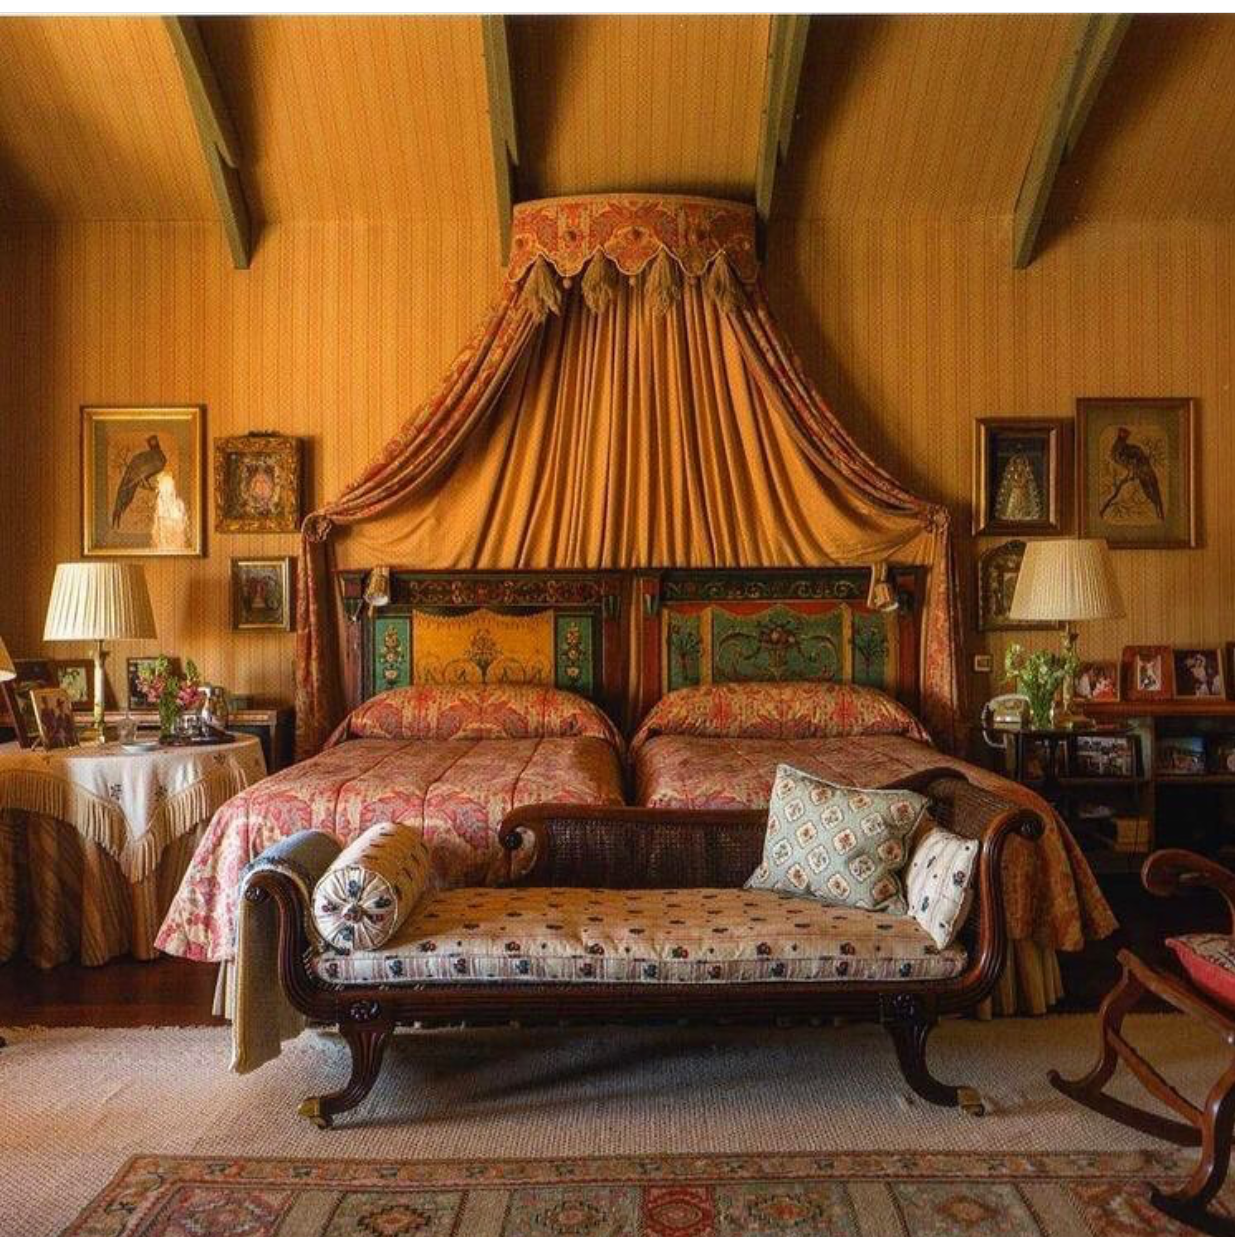 Bedroom by Jaime Parlade. Ricardo Labougle photography